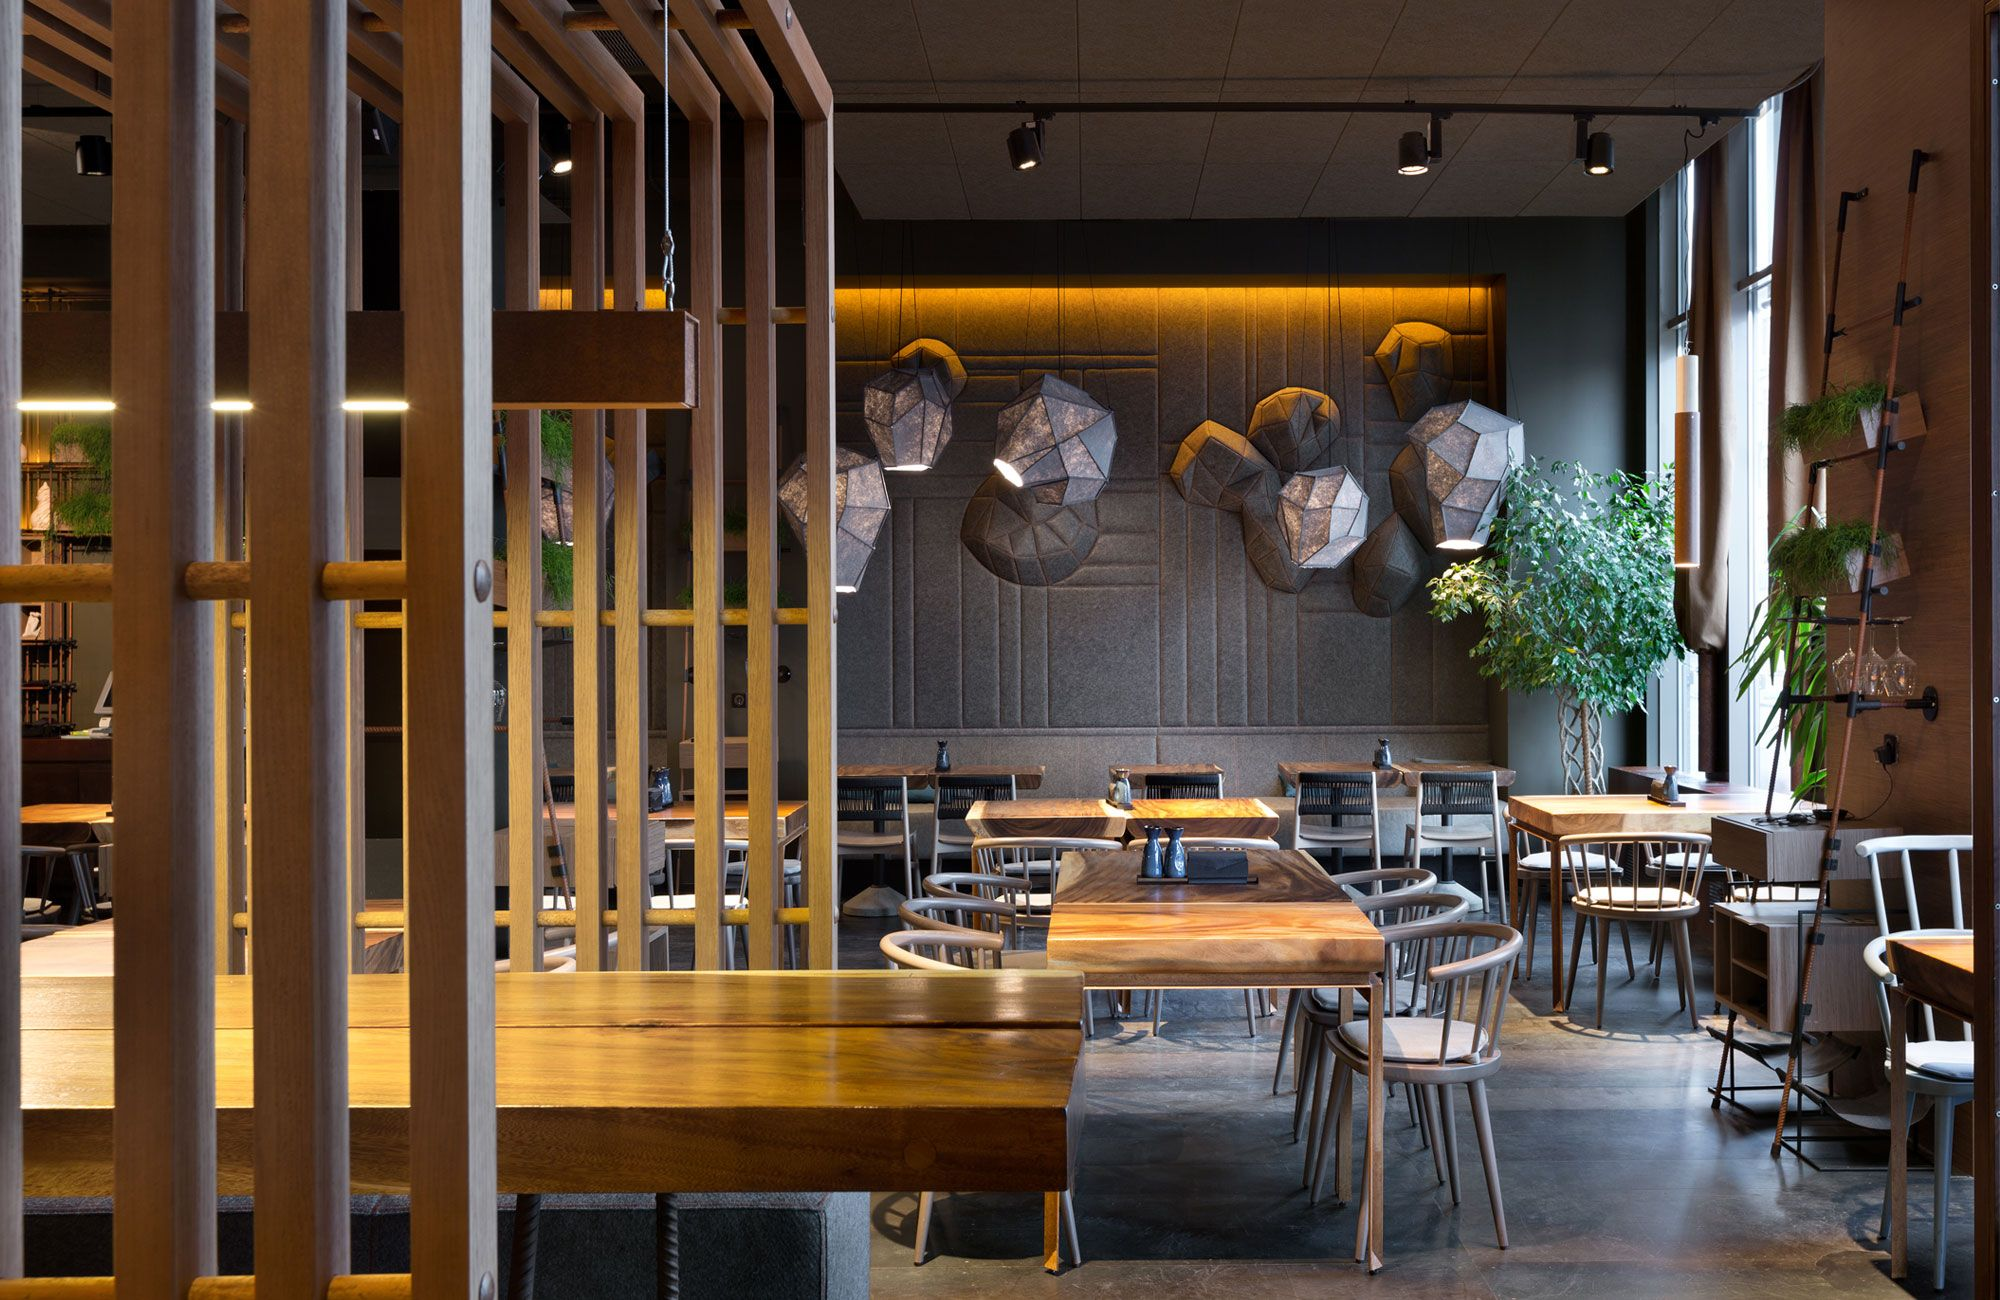 EAST+/+restaurant | ideias thinking | Pinterest | East restaurant ...